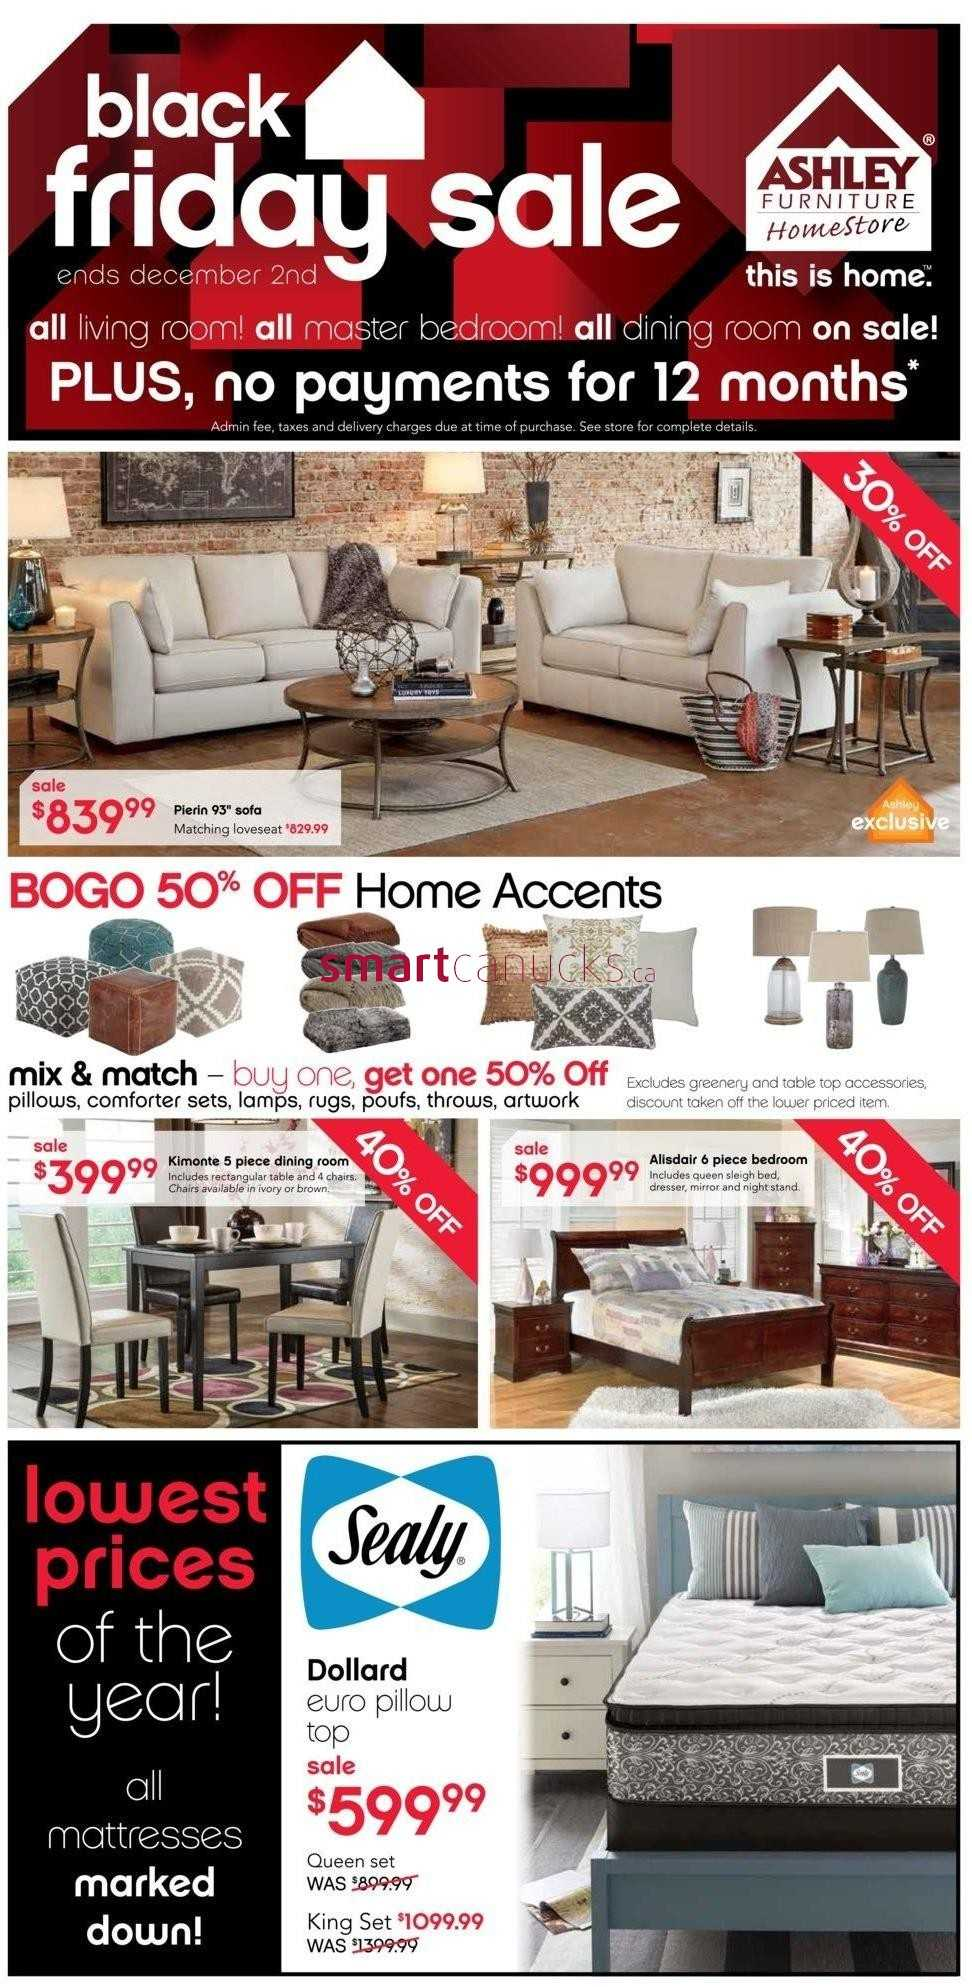 Ashley Furniture Home Store On Black Friday Flyer November 26 To